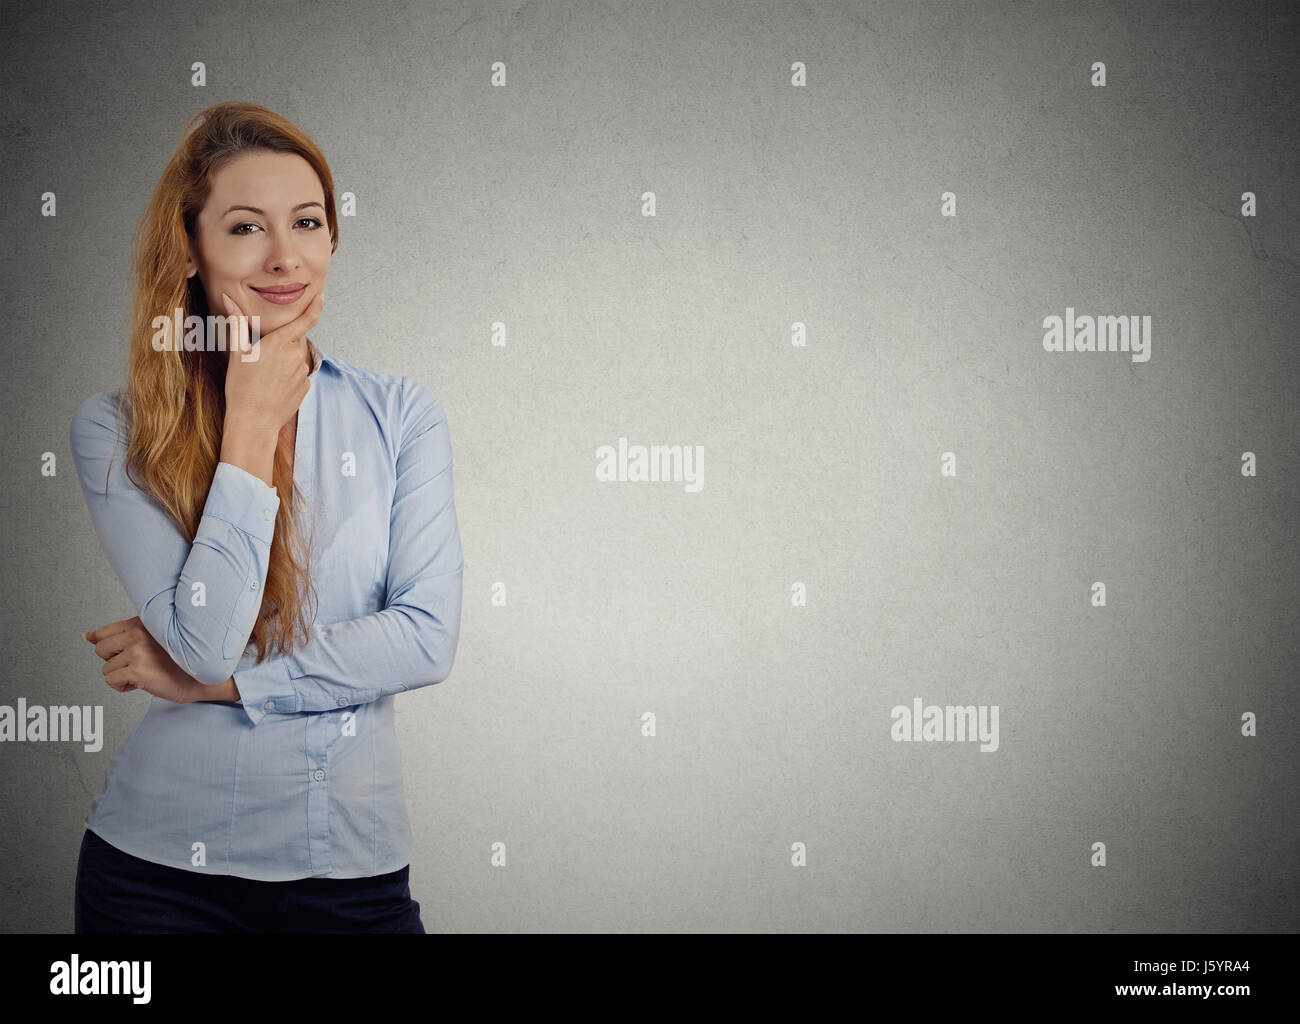 Portrait happy beautiful confident smiling woman thinking looking at camera isolated grey wall background with copy - Stock Image